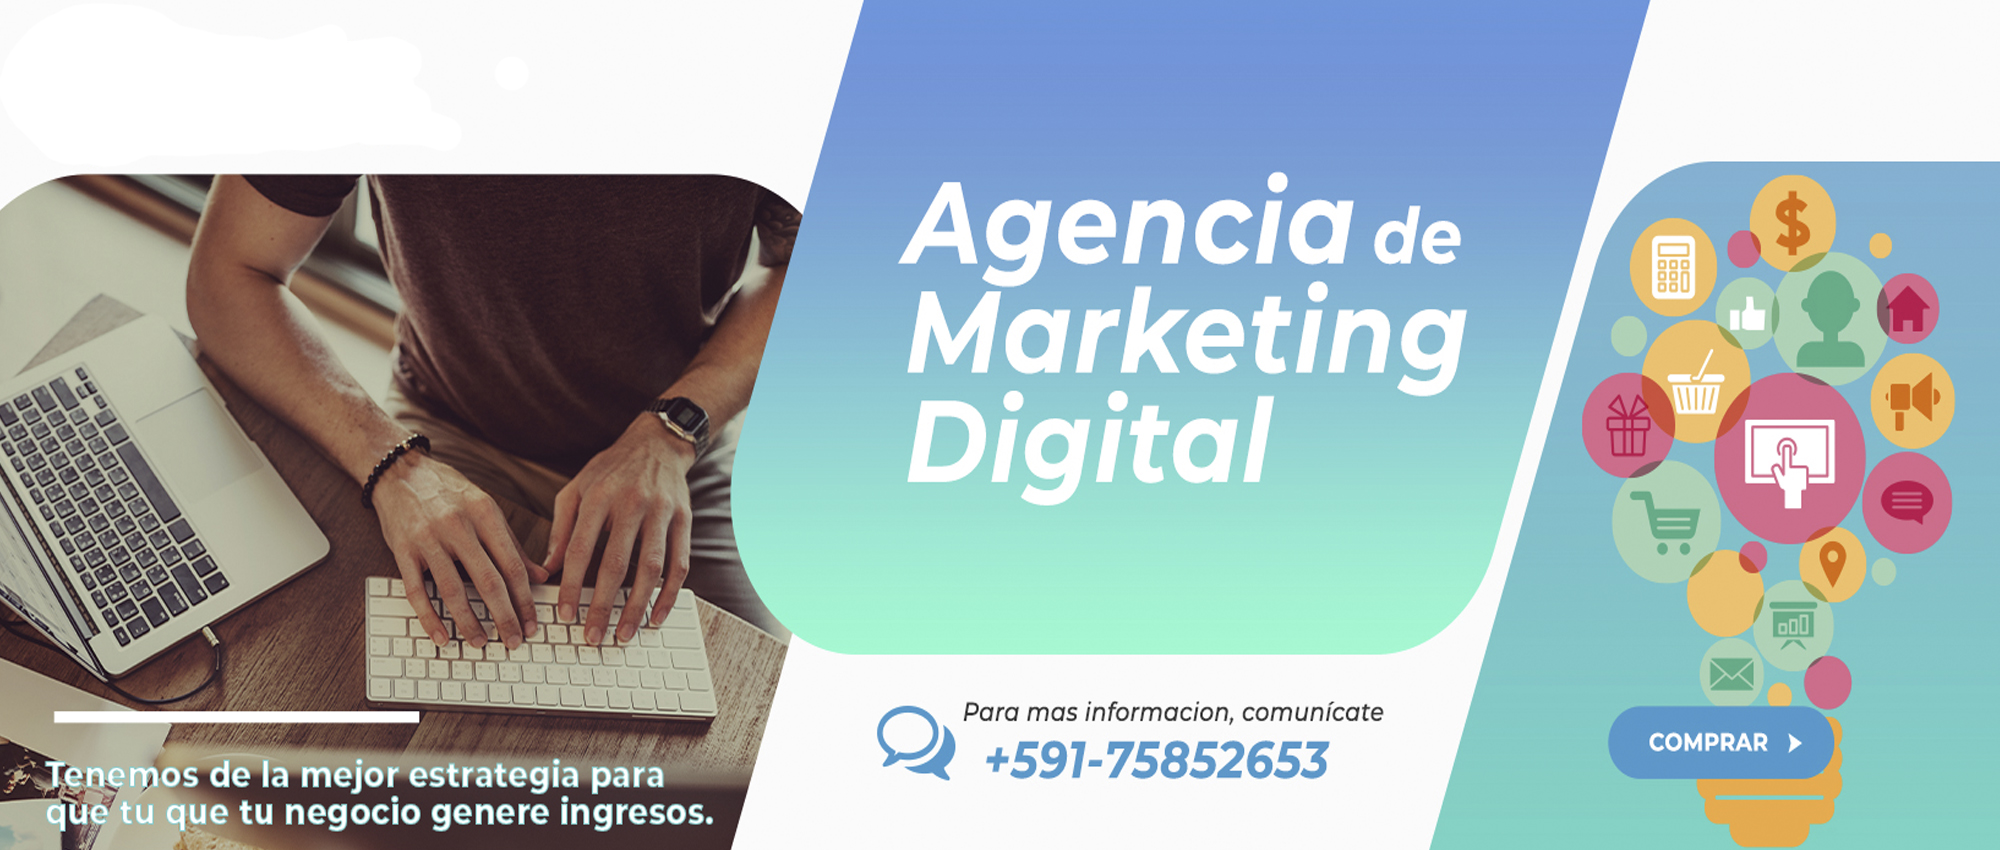 bannermarketingdpng